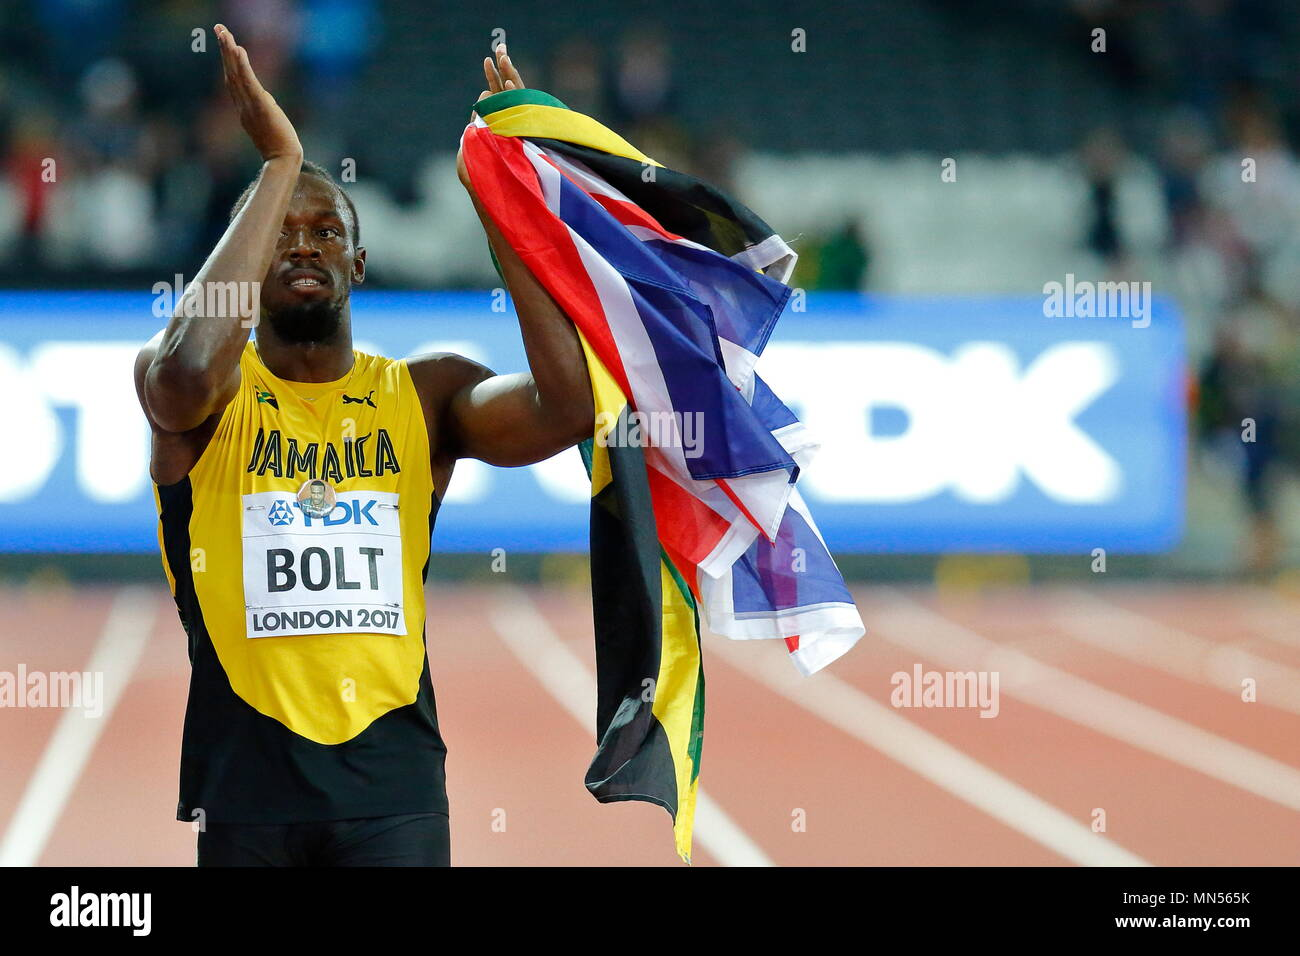 LONDON, ENGLAND - AUGUST 05: Usain Bolt of Jamaica having run his last 100m race, applauds the crowd during a lap of honour during day two of the 16th IAAF World Athletics Championships London 2017 at The London Stadium on August 5, 2017 in London, United Kingdom. Photo by Paul Cunningham - Stock Image